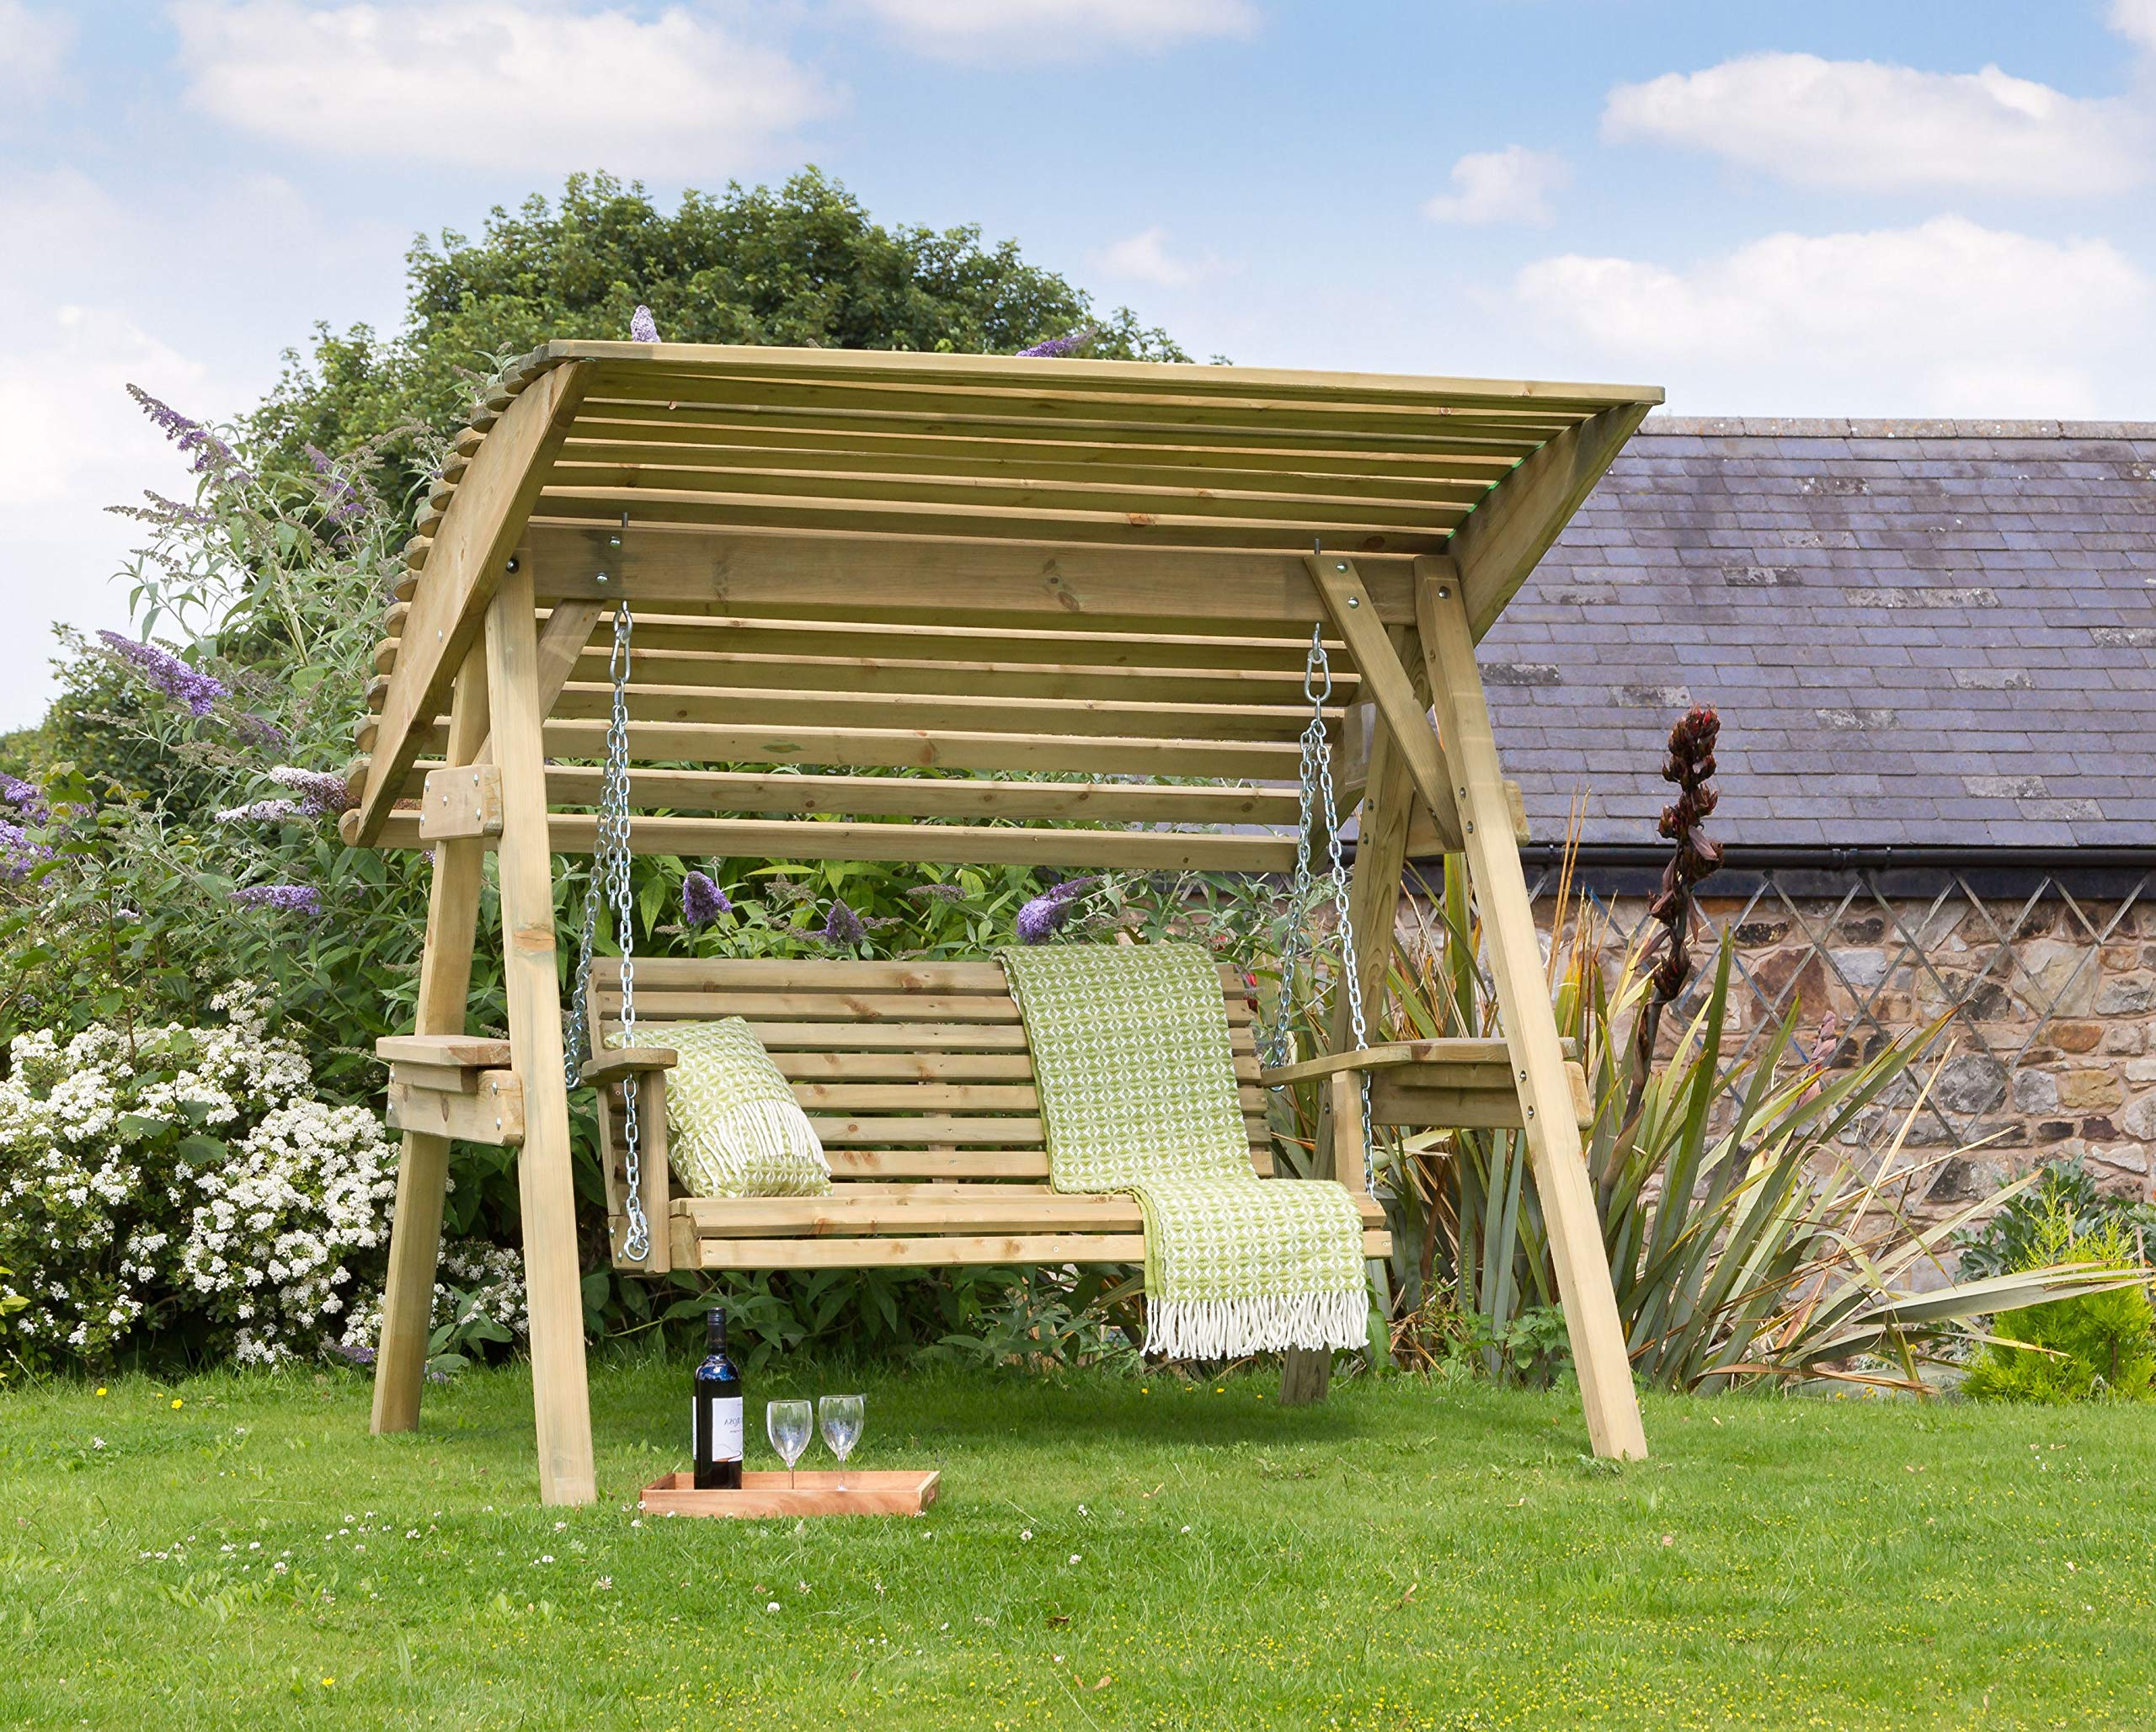 Parcel in the Attic - Avilés 8 Seat Wooden Garden Swing Chair with Canopy -  Hammock Bench Furniture Lounger - 8 year warranty against Rot